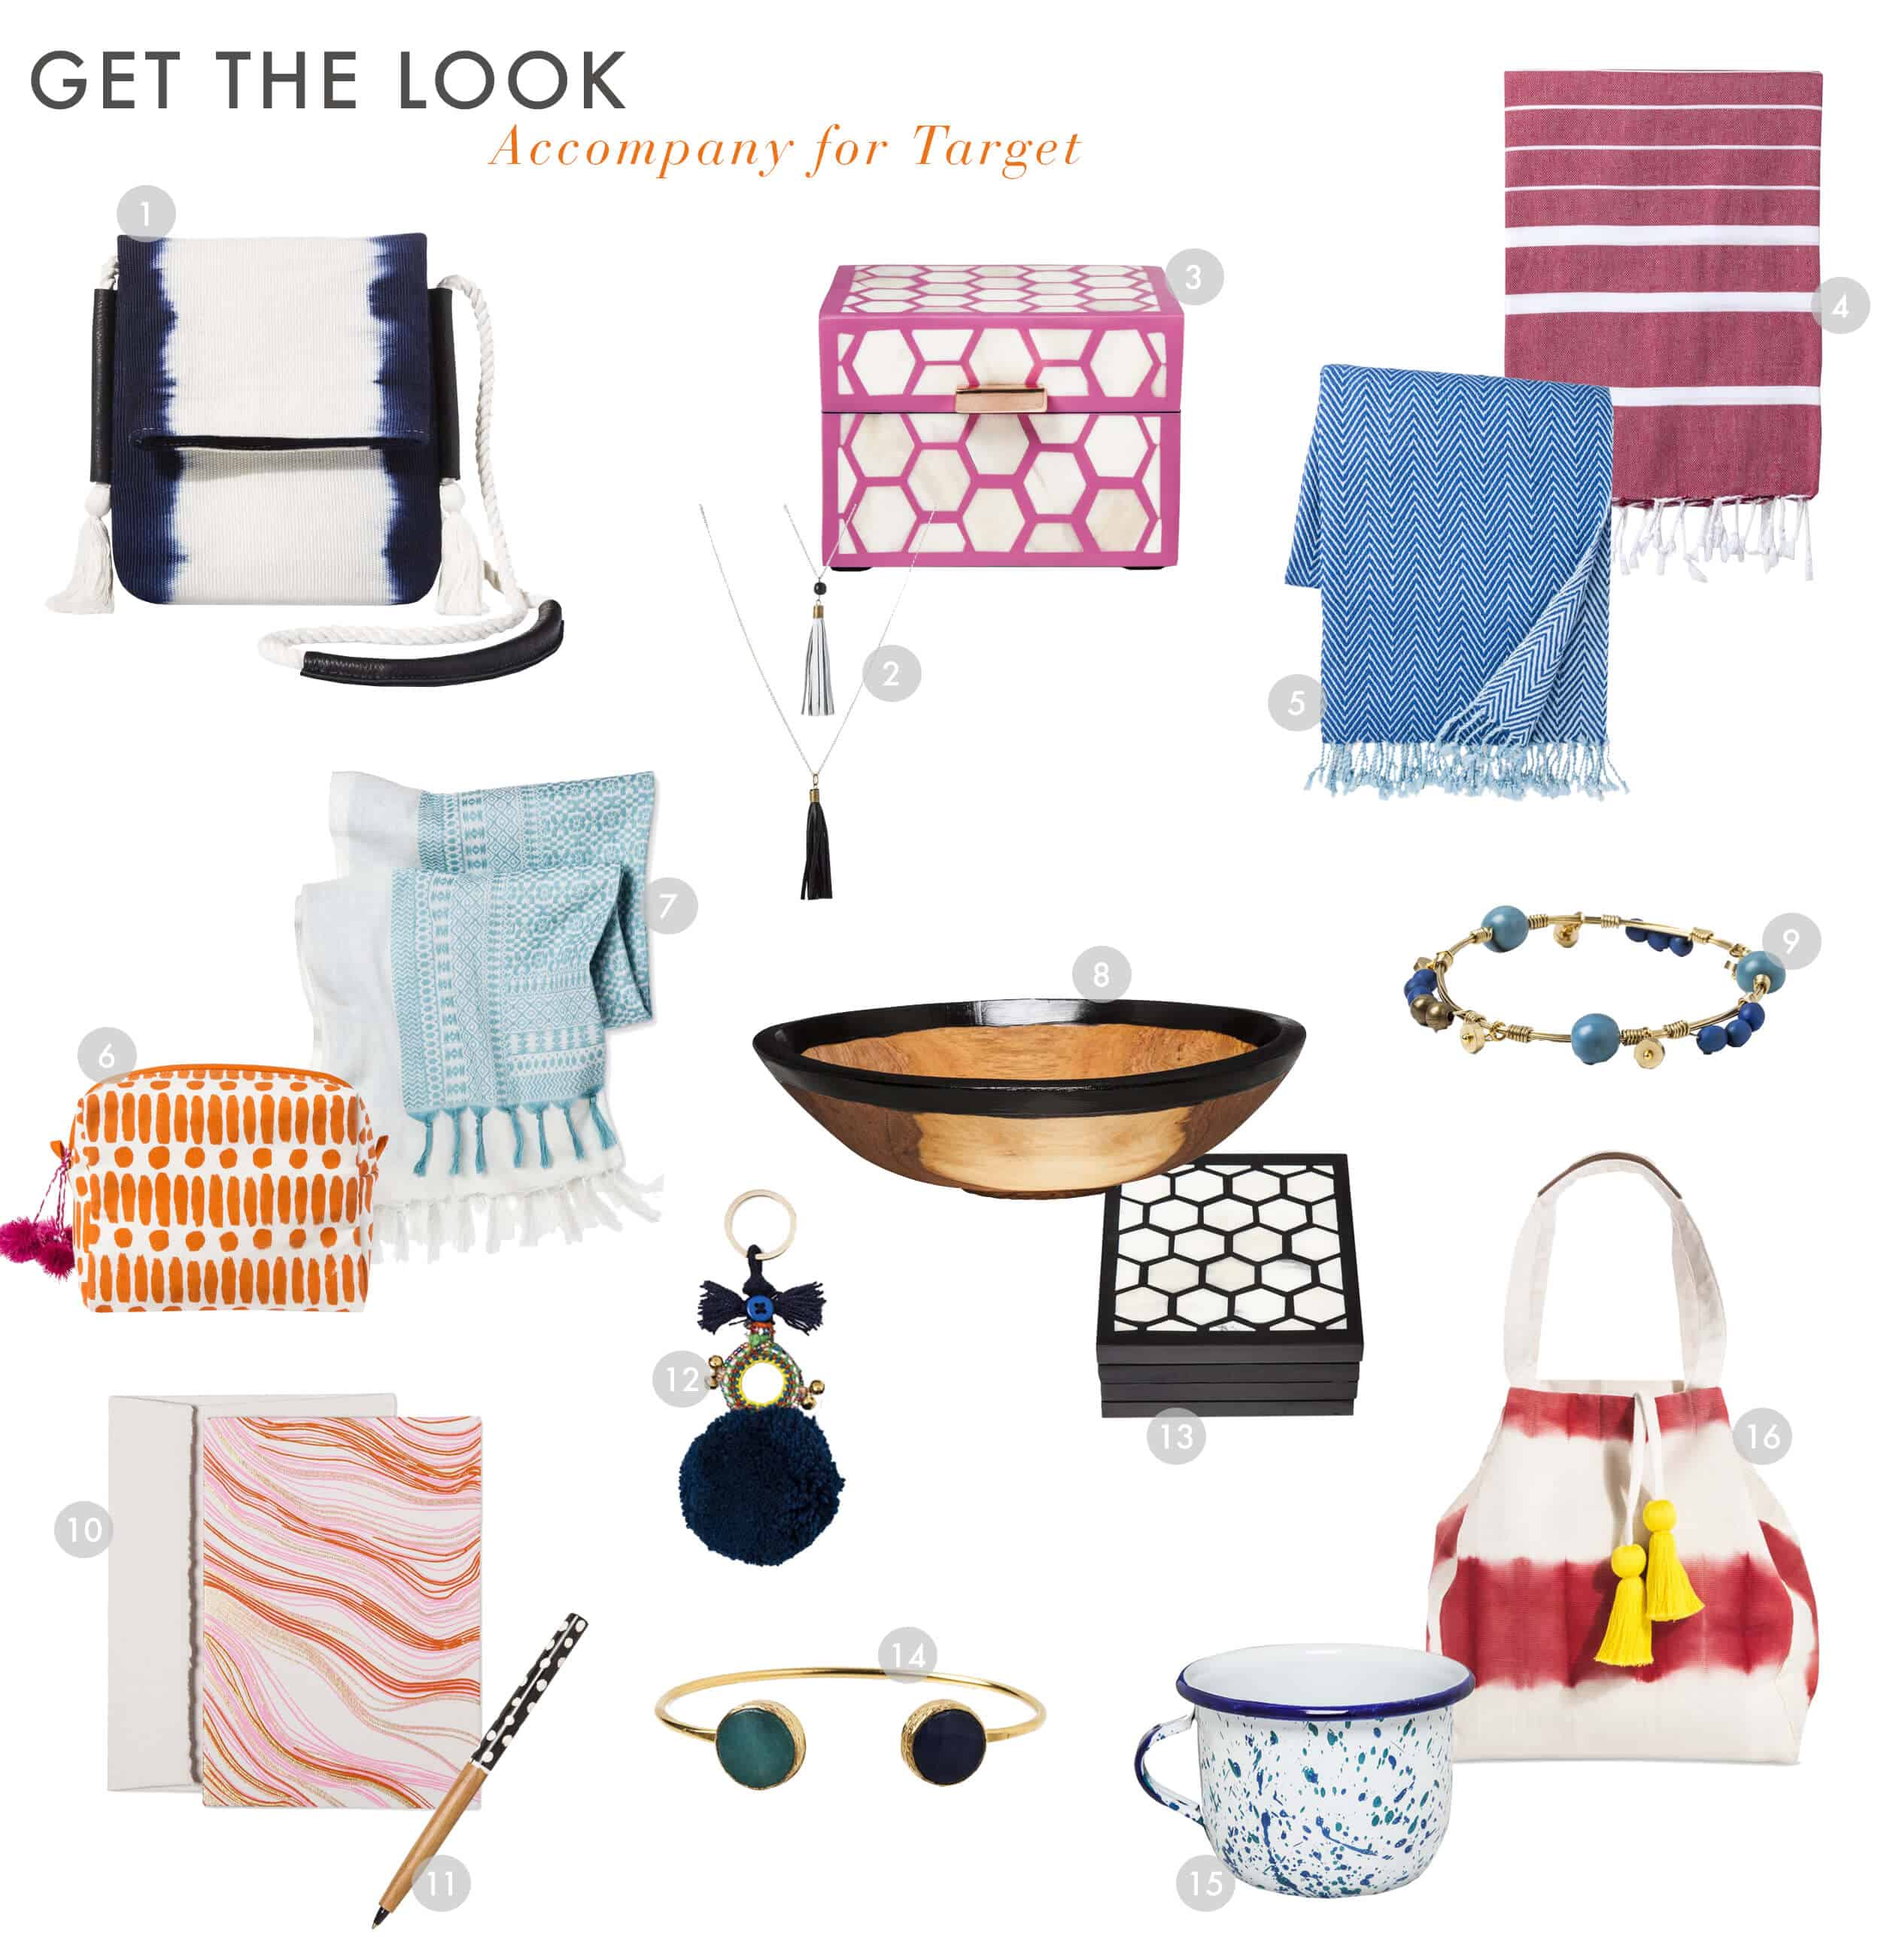 Emily-Henderson_Global_Accessories_Target_Accompany_Get-the-Look